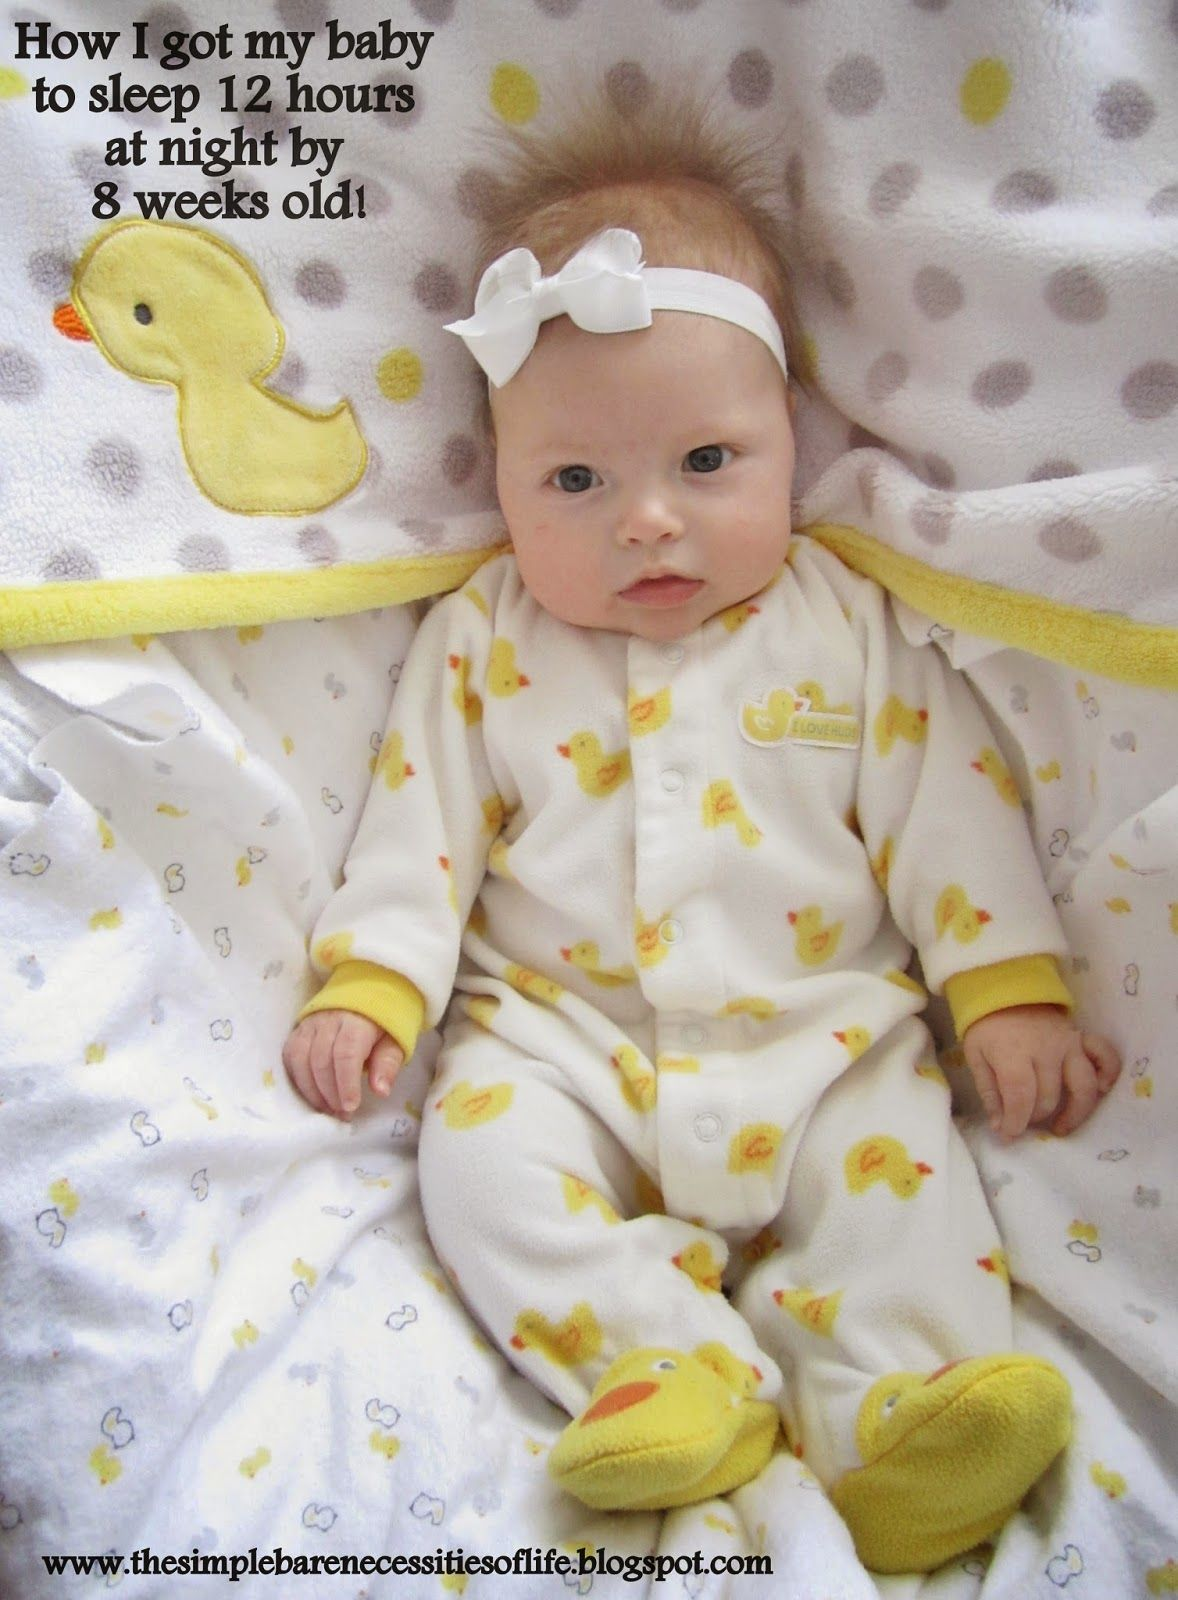 How I got my baby to sleep 12 hours at night by 8 weeks old